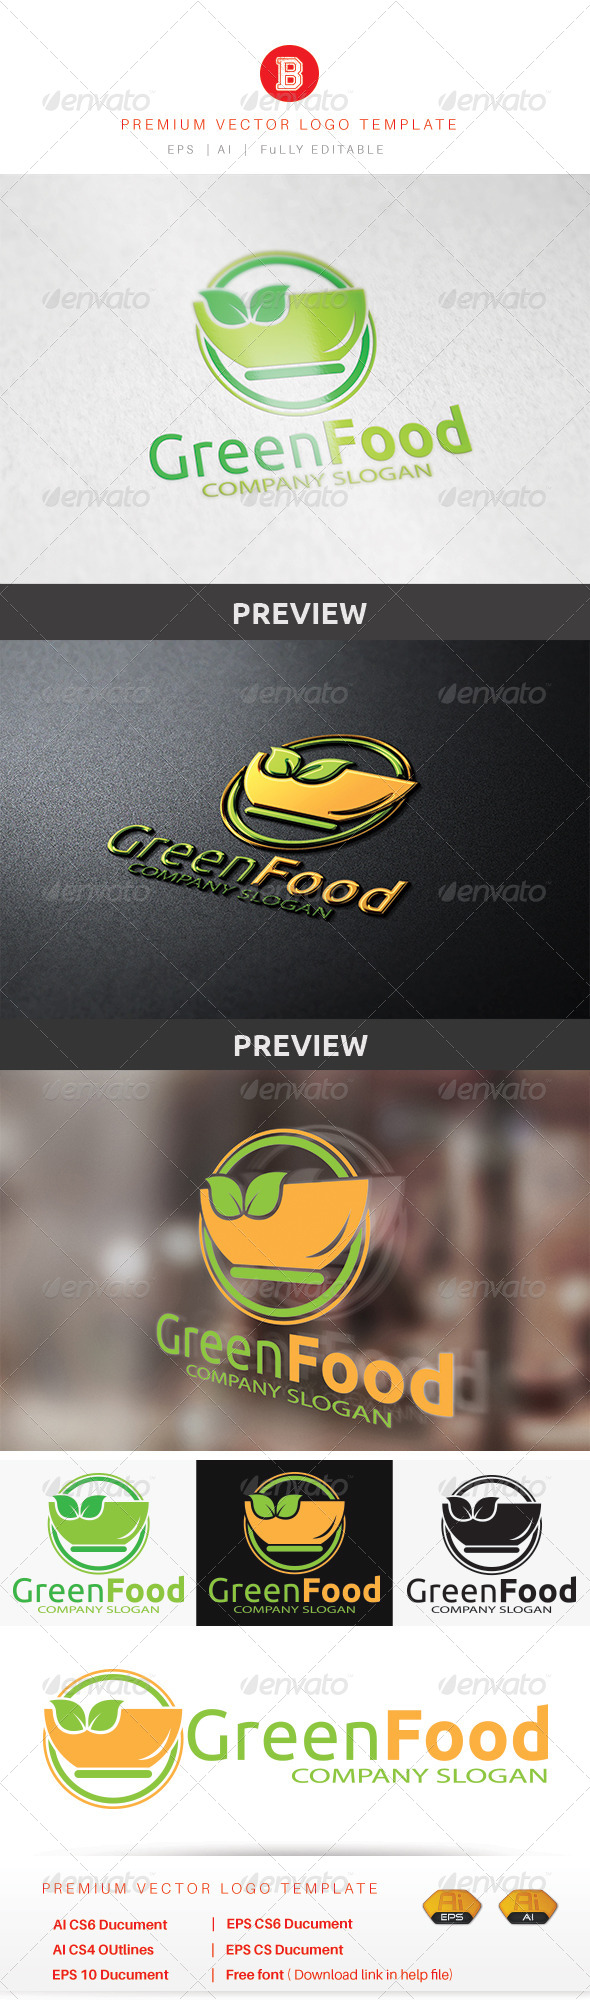 GraphicRiver Green Food 8679759